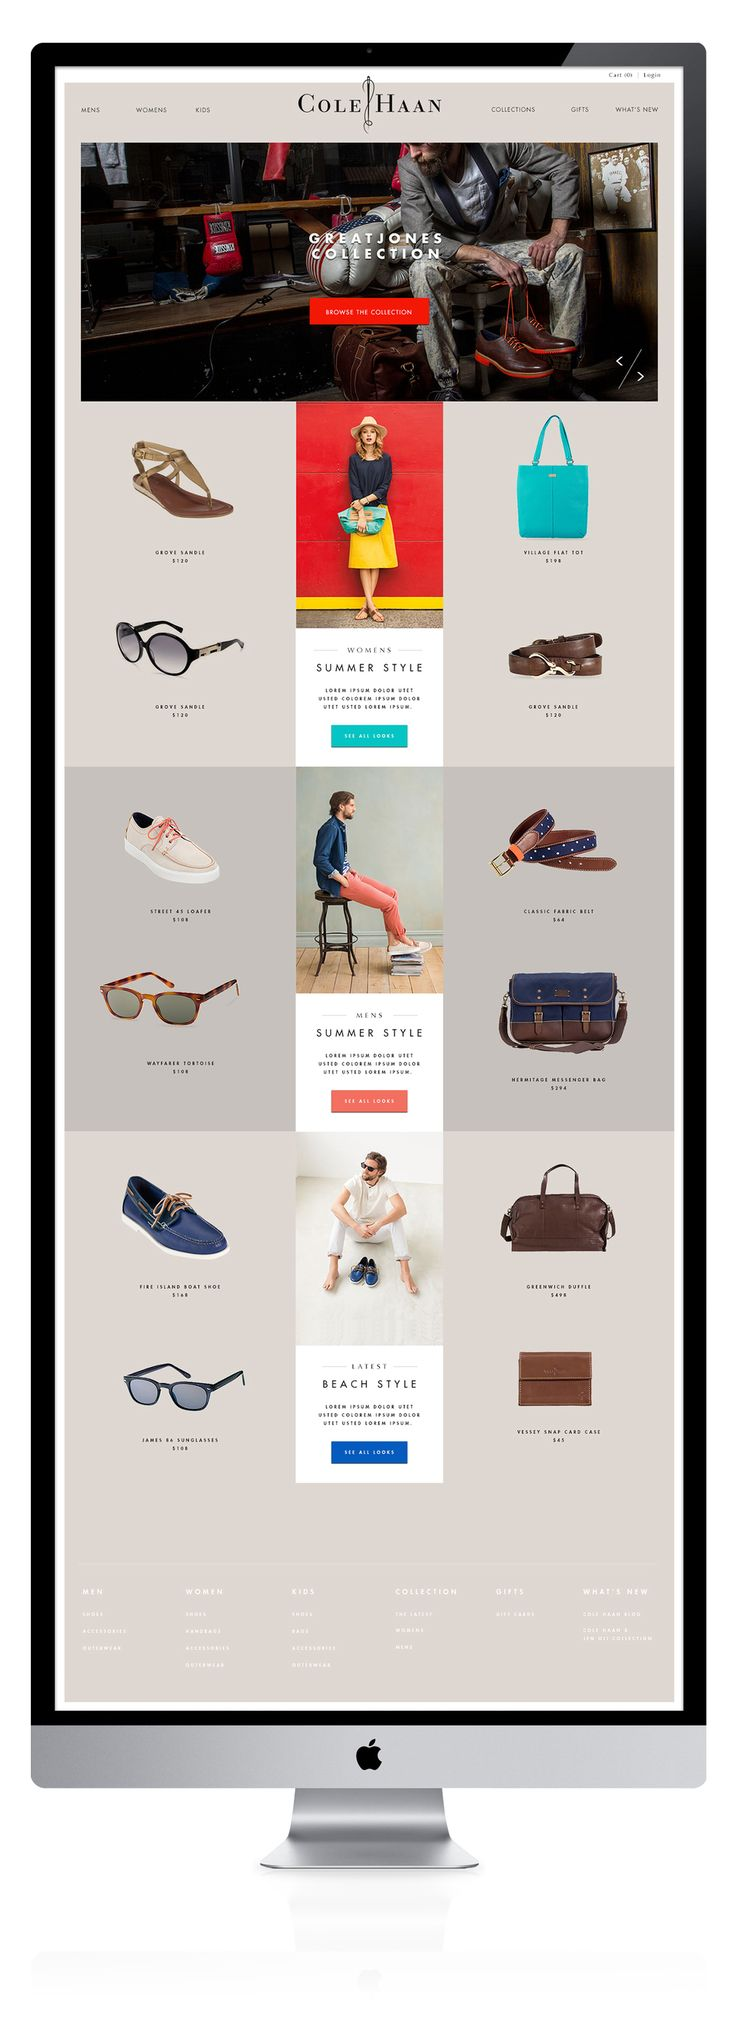 Cole Haan by Joshua Long -cool web design layout